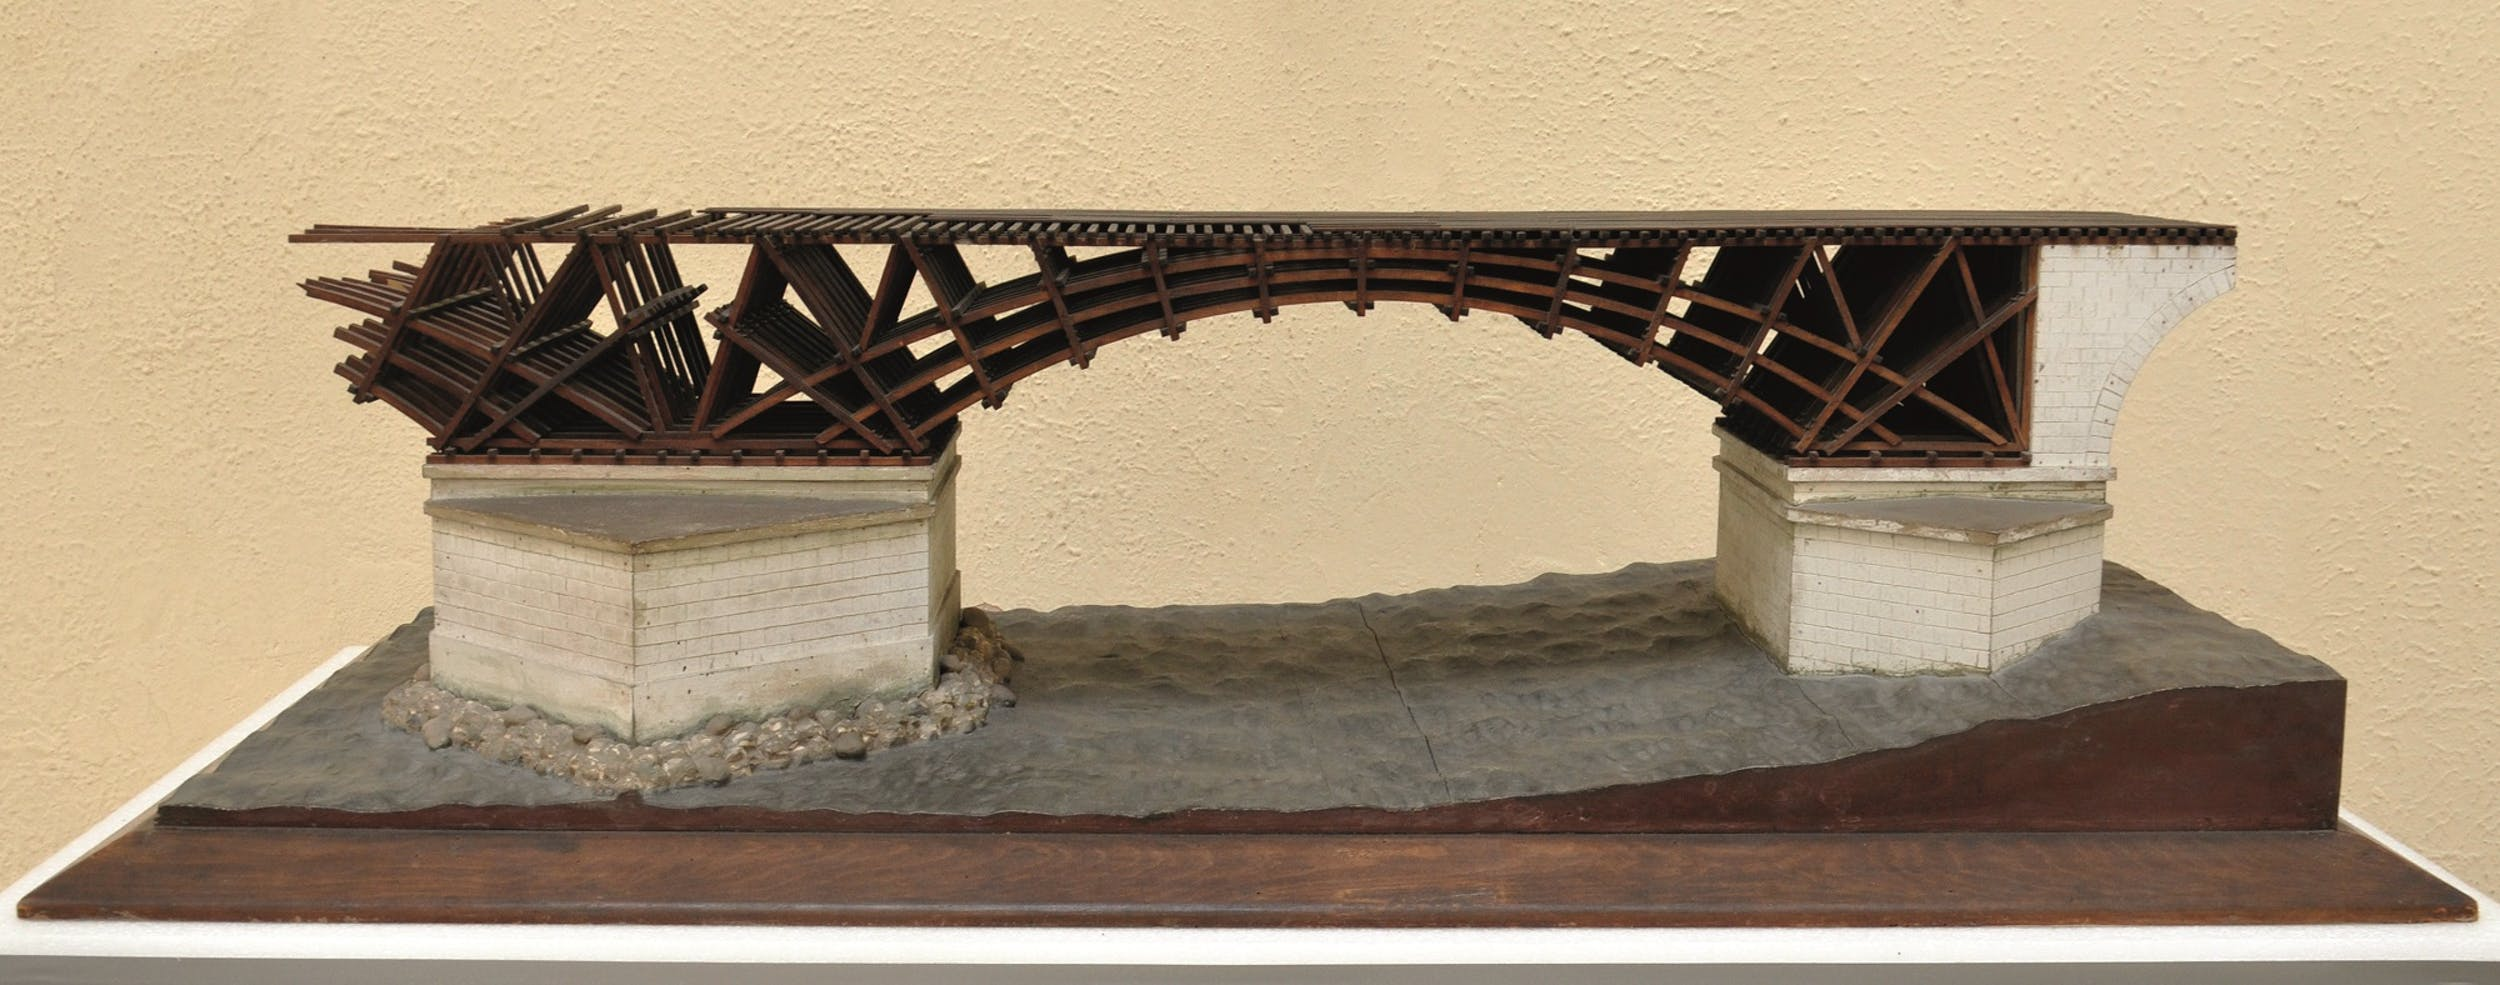 Fig. 16 Italo Gismondi Reconstruction of the Bridge over the Danube Model in 1:50 scale Museo della Civiltà Romana, Rome